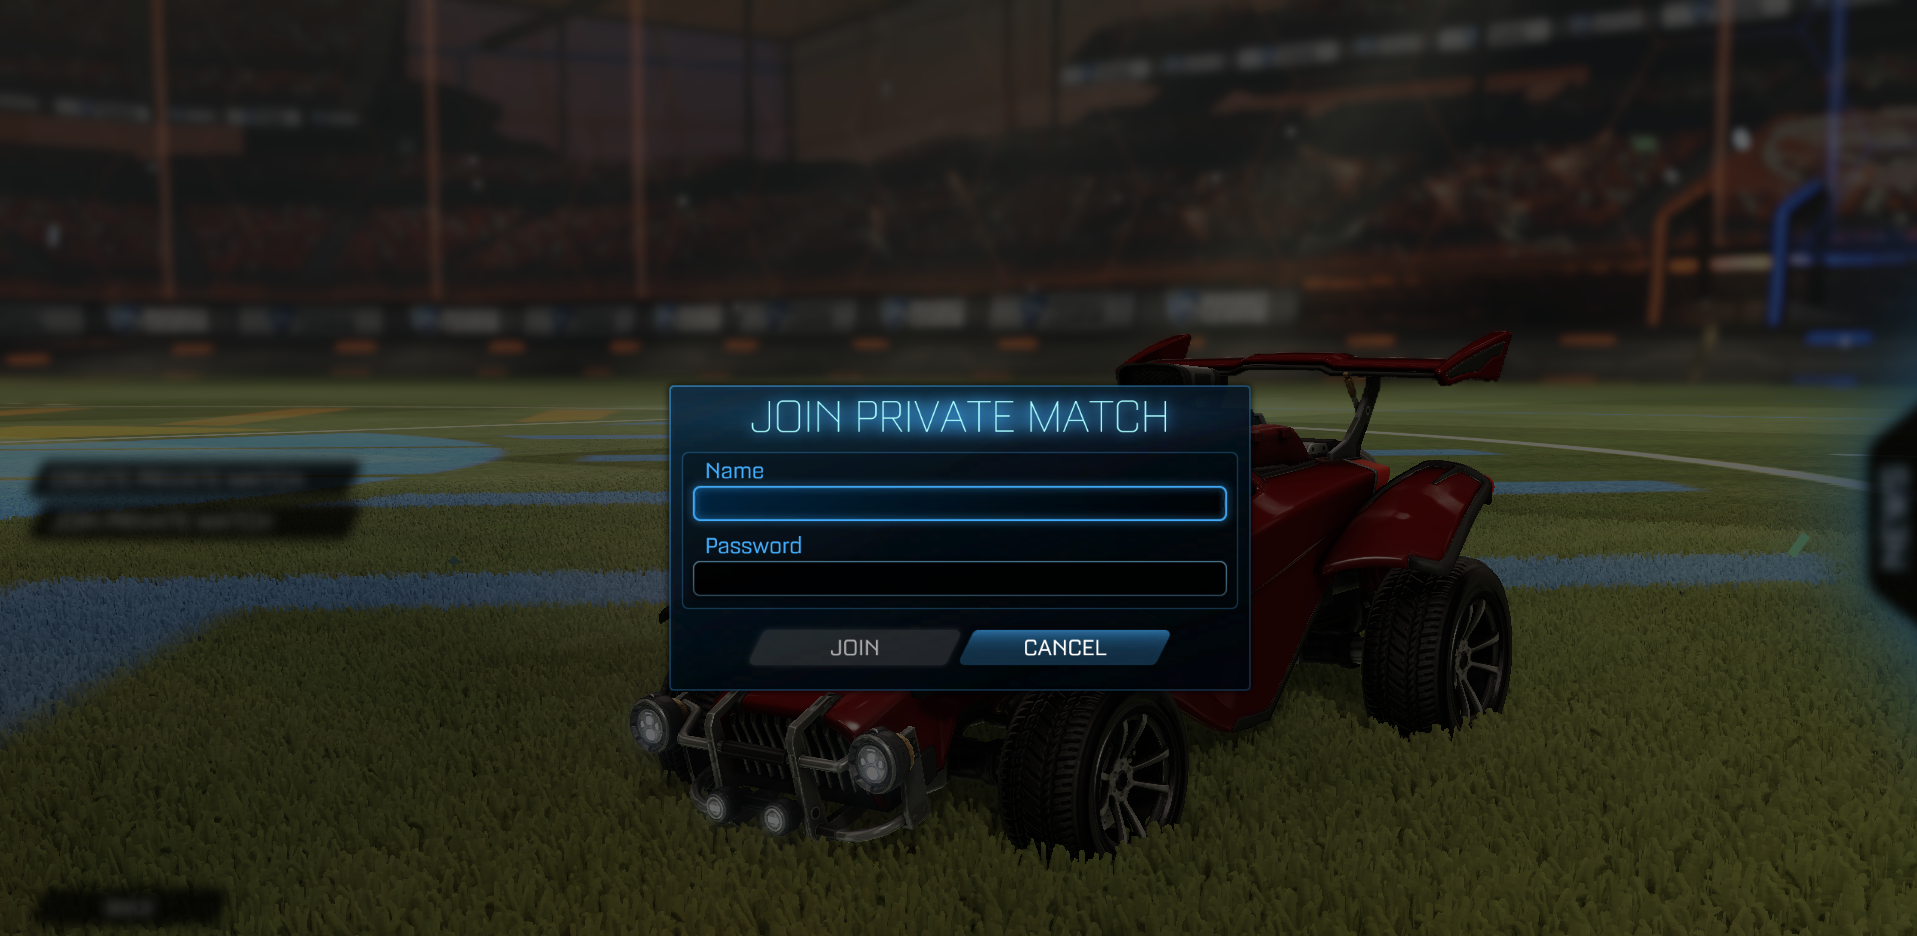 private_match_join.png